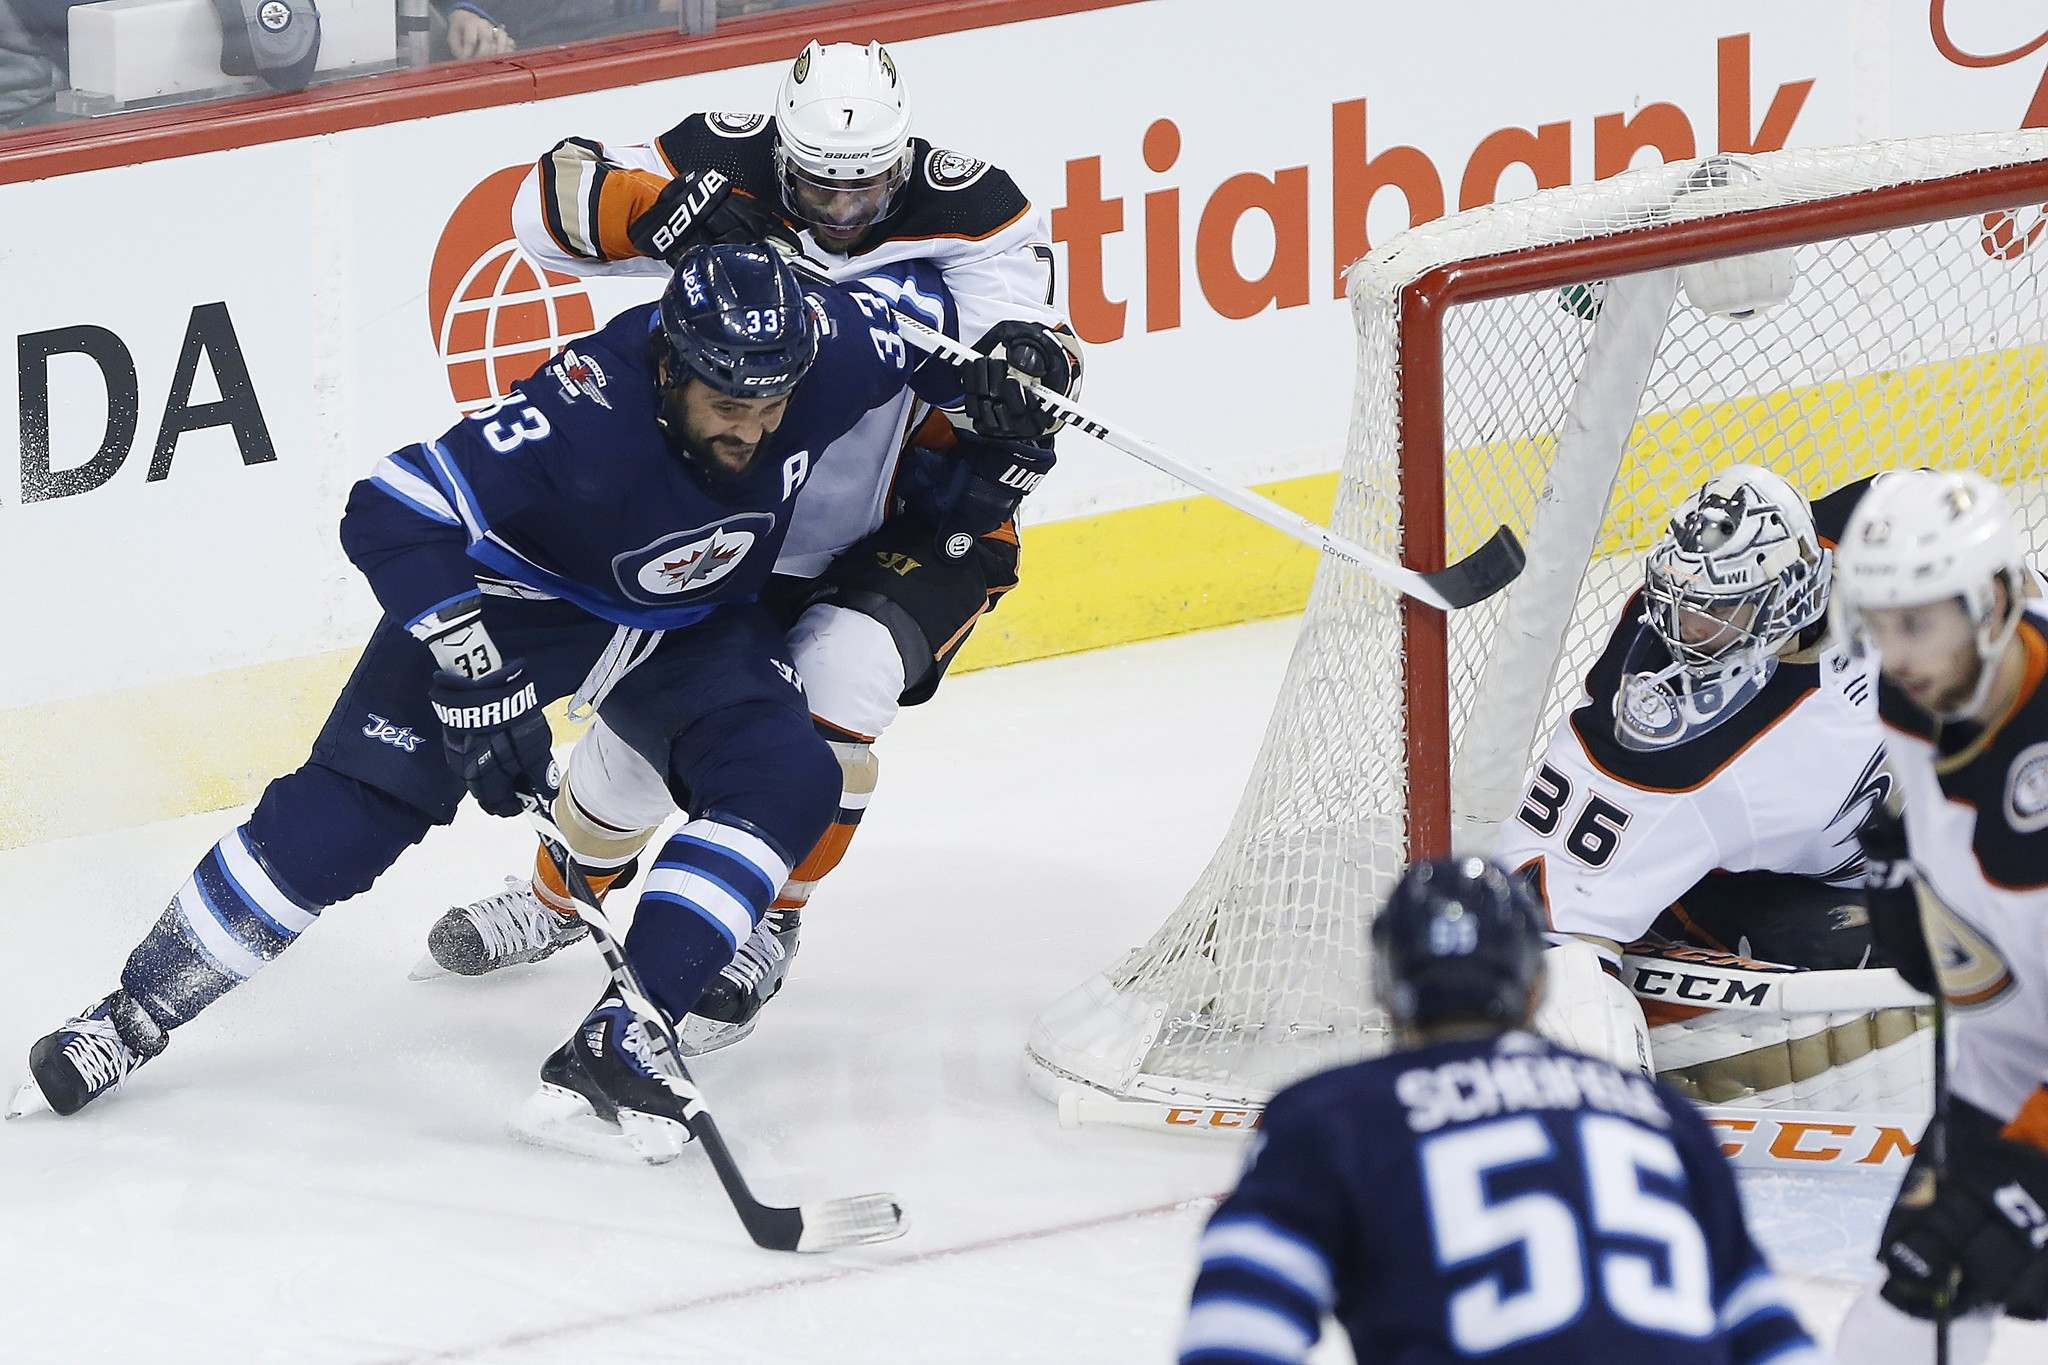 John Woods / The Canadian Press files</p><p>Jets defenceman Dustin Byfuglien has cut down on risky rushes up the ice but still makes the occasional foray deep into the opposition's end.</p></p>